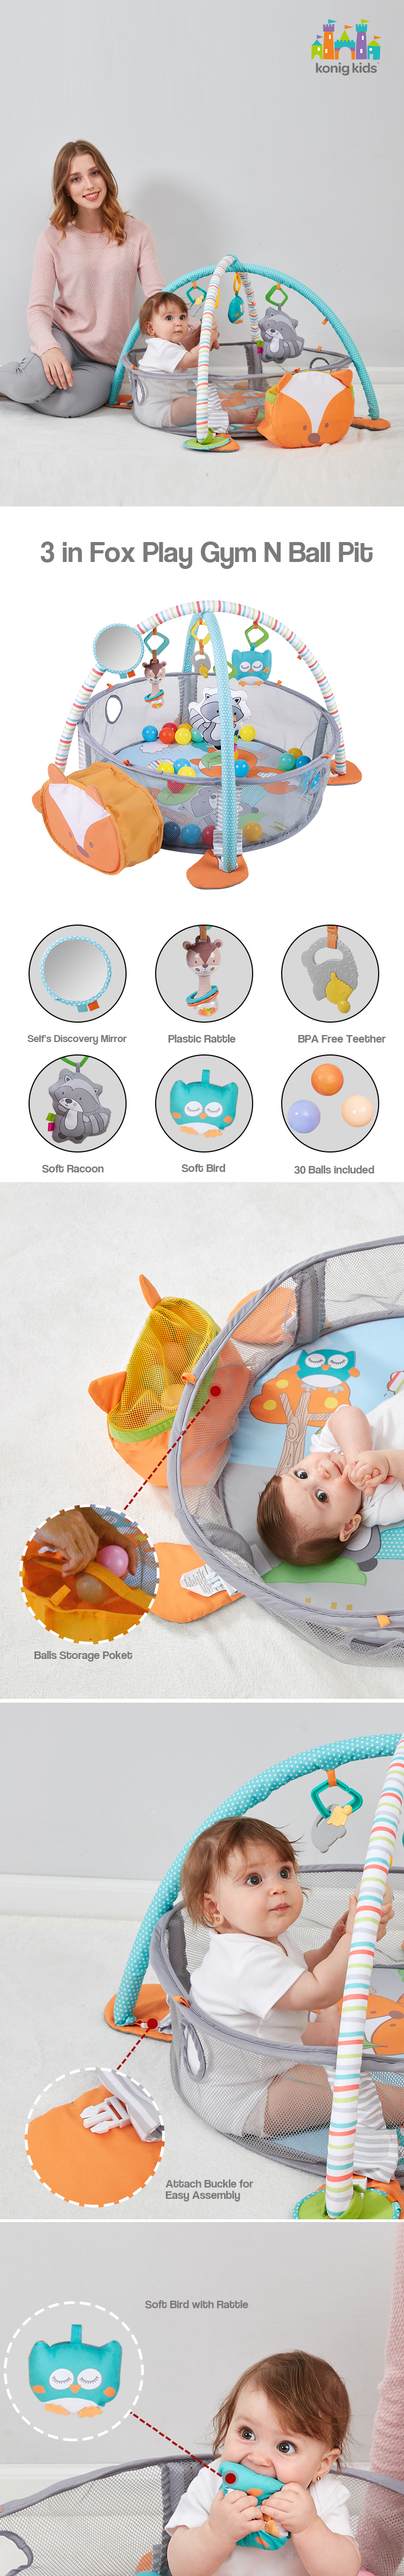 Educational Baby Gym Multifunction Gym Folding Colorful  3 in 1 activity Baby Play Gym With Ocean Balls For Kids